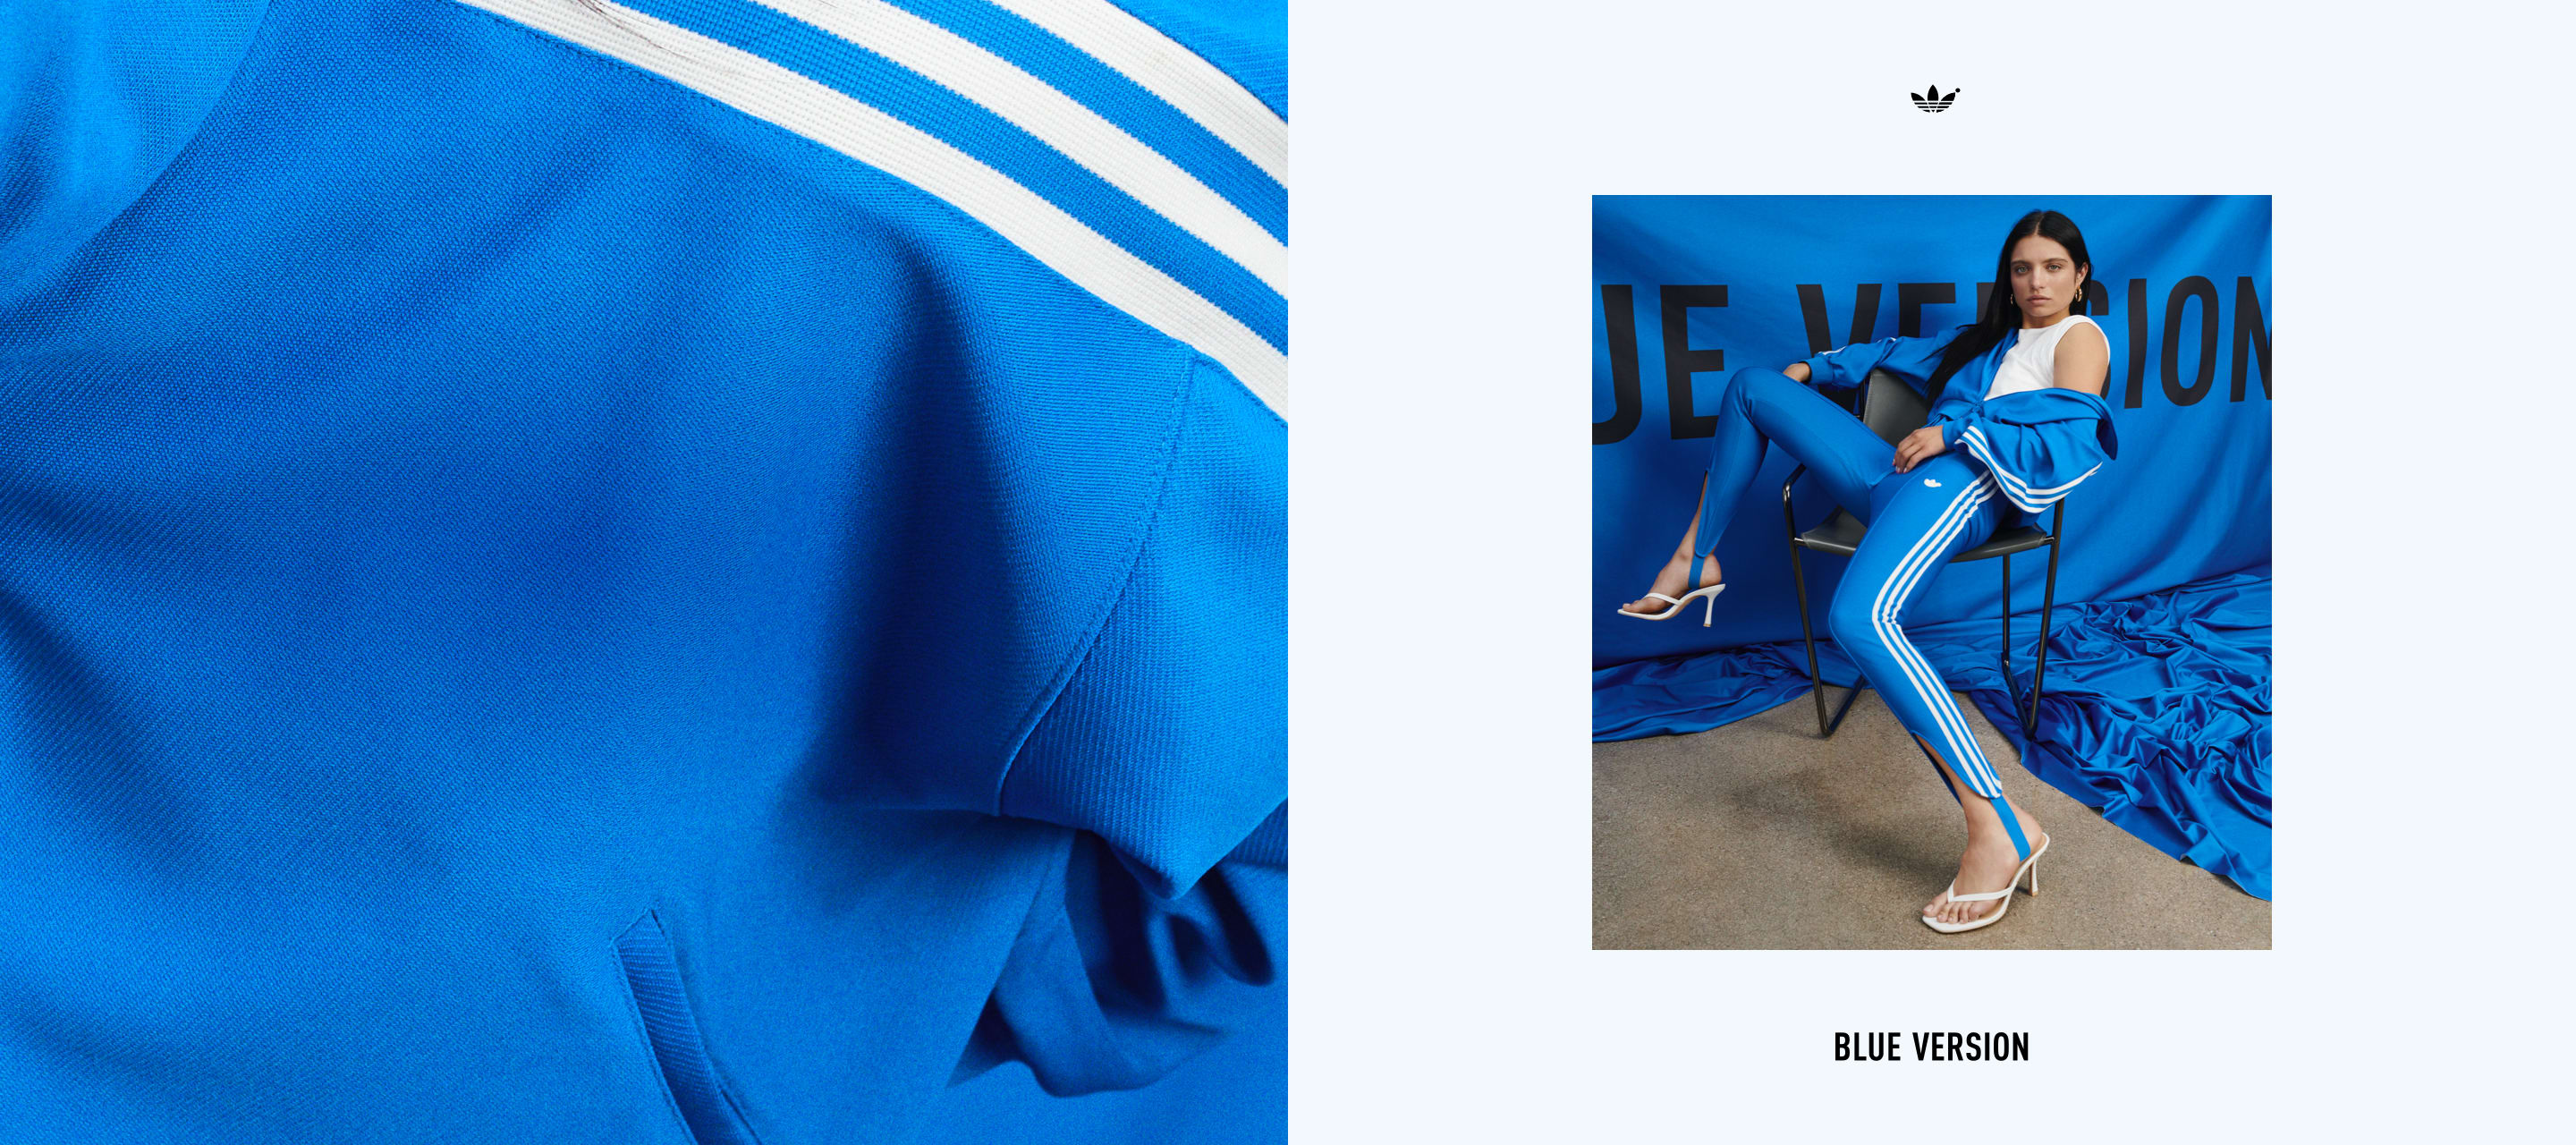 An image of Ganna Bogdan striking a pose on a chair wearing the Blue Version Beckenbauer tracksuit in bluebird and a pair of high heels.